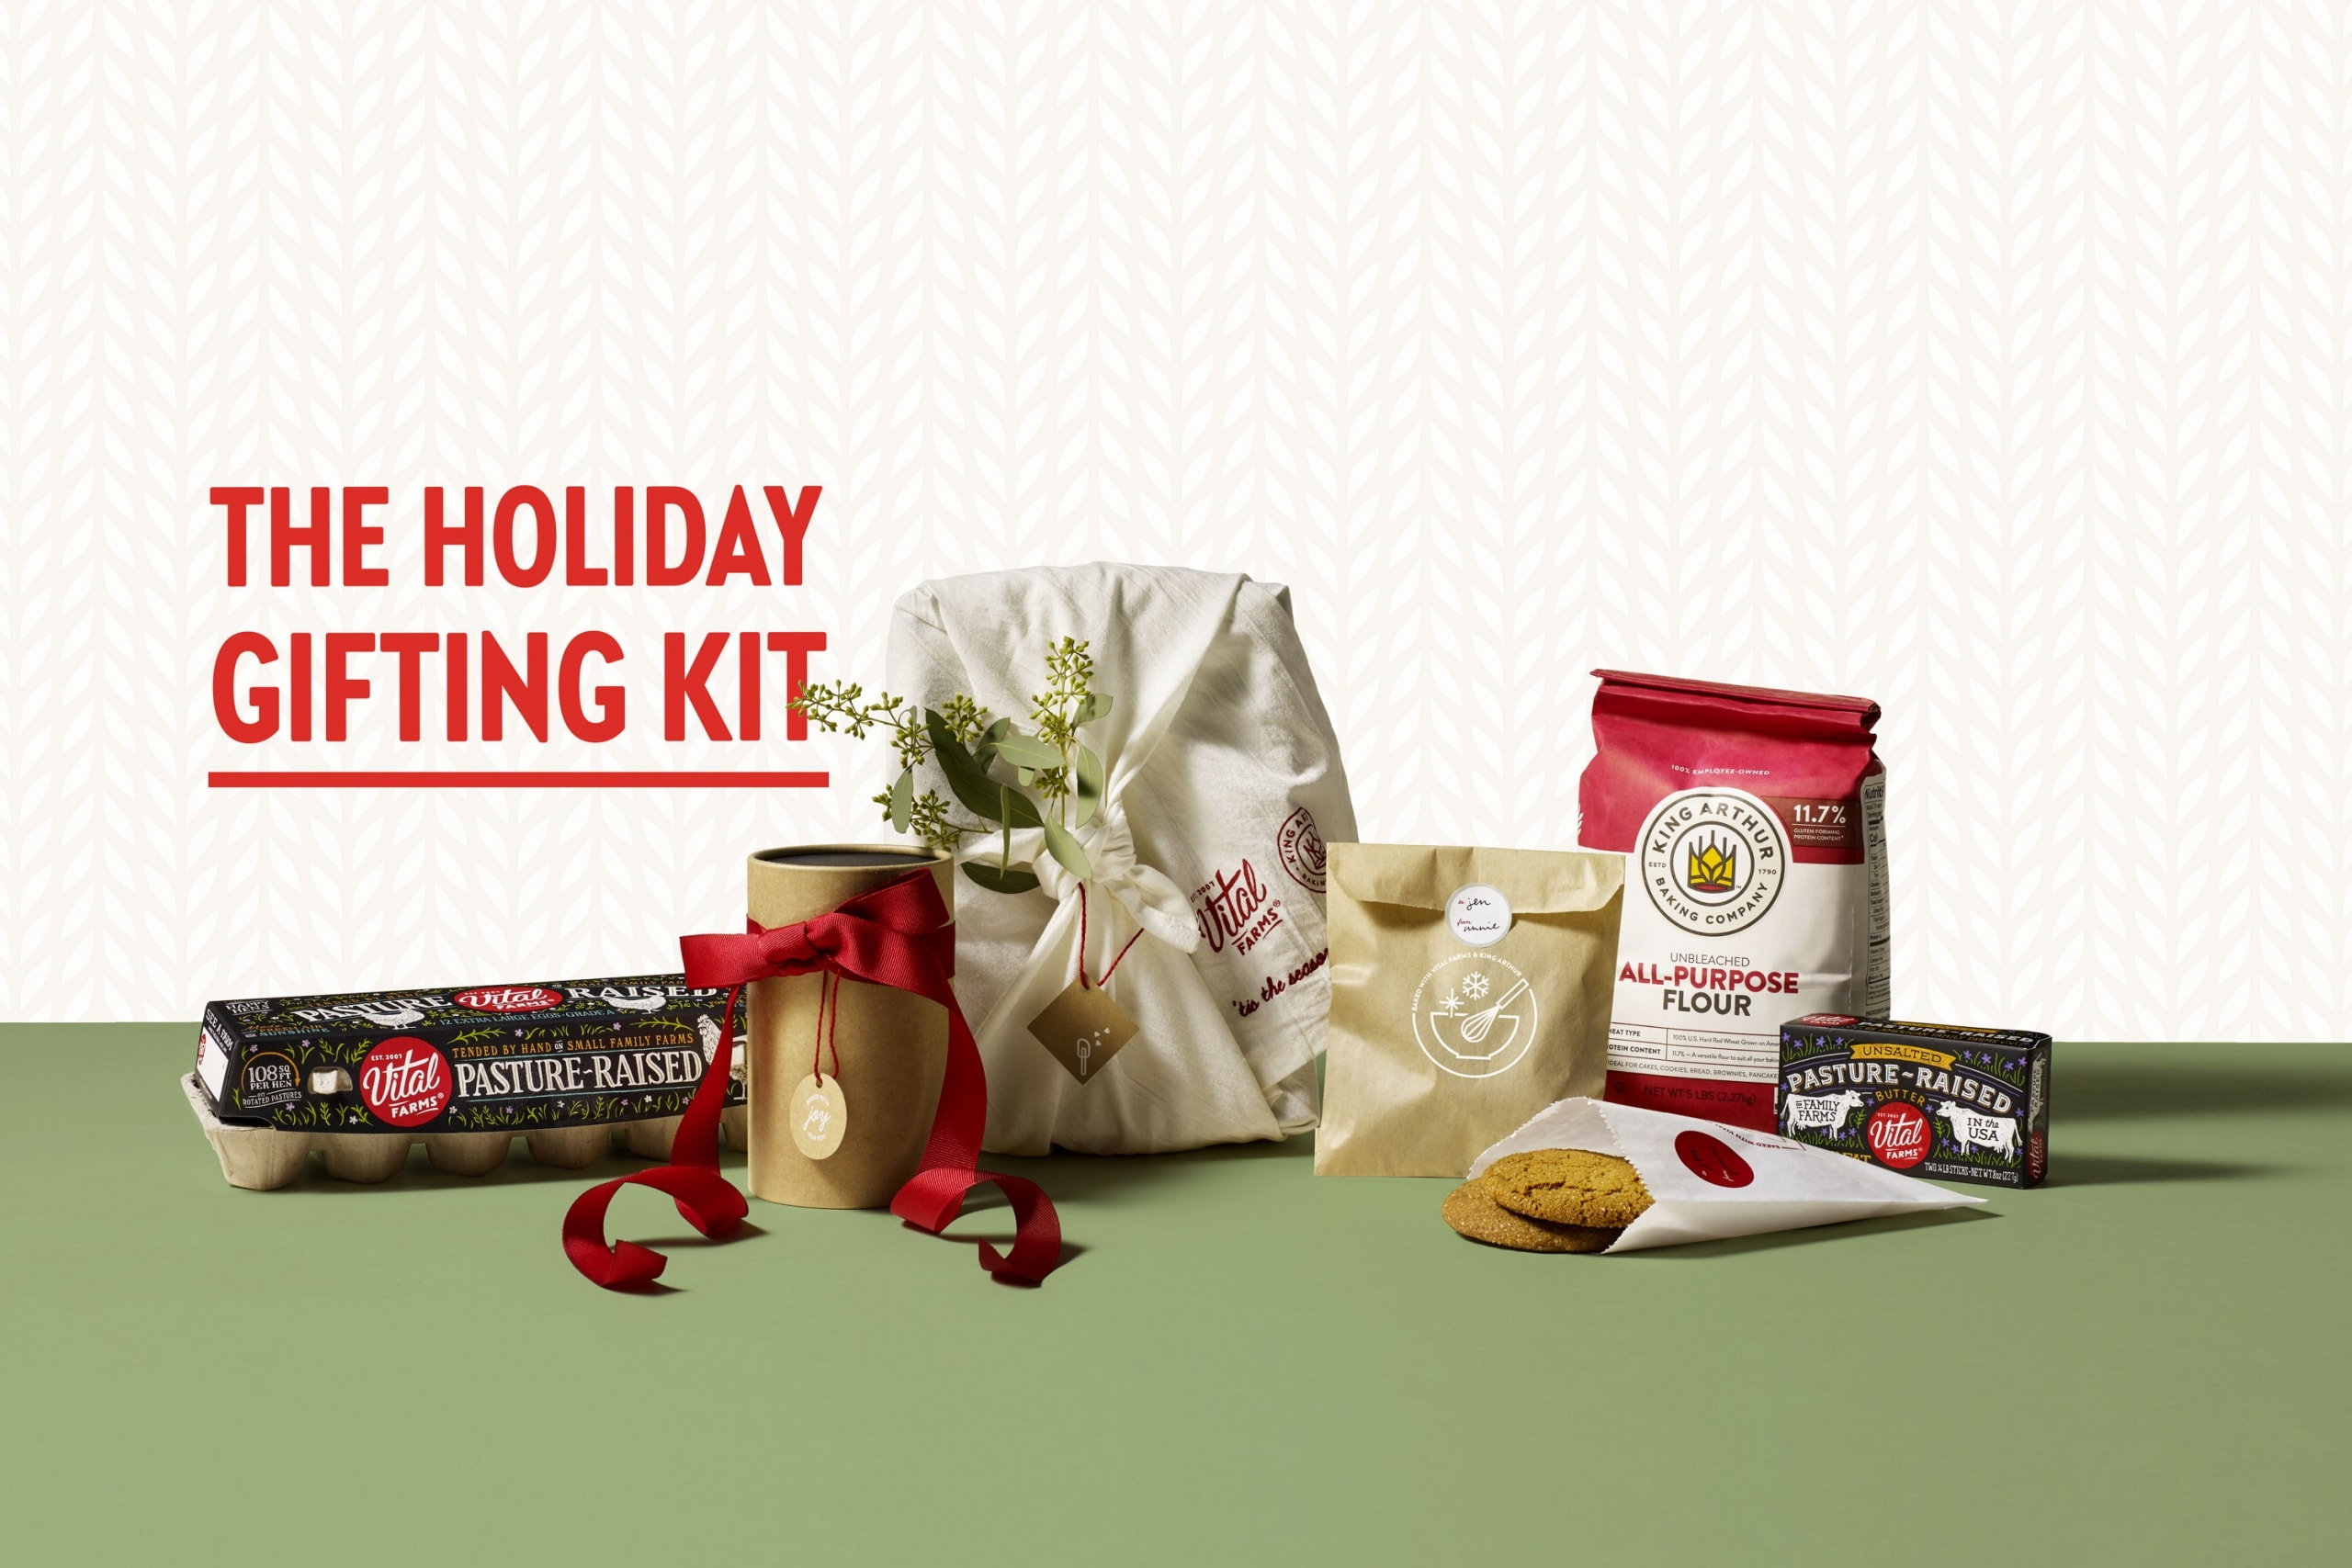 Introducing the Holiday Gifting Kit